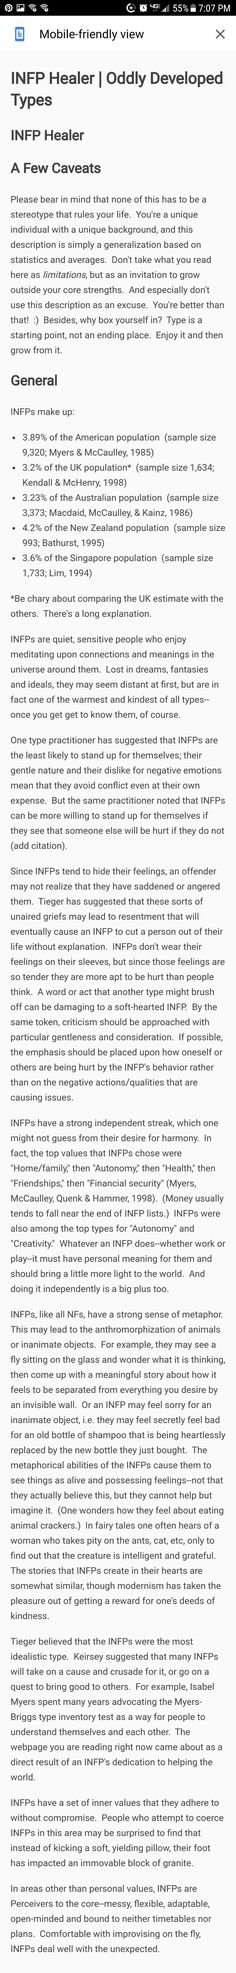 I see almost nothing wrong with what way said about an INFP. Why change!? Maybe a little.